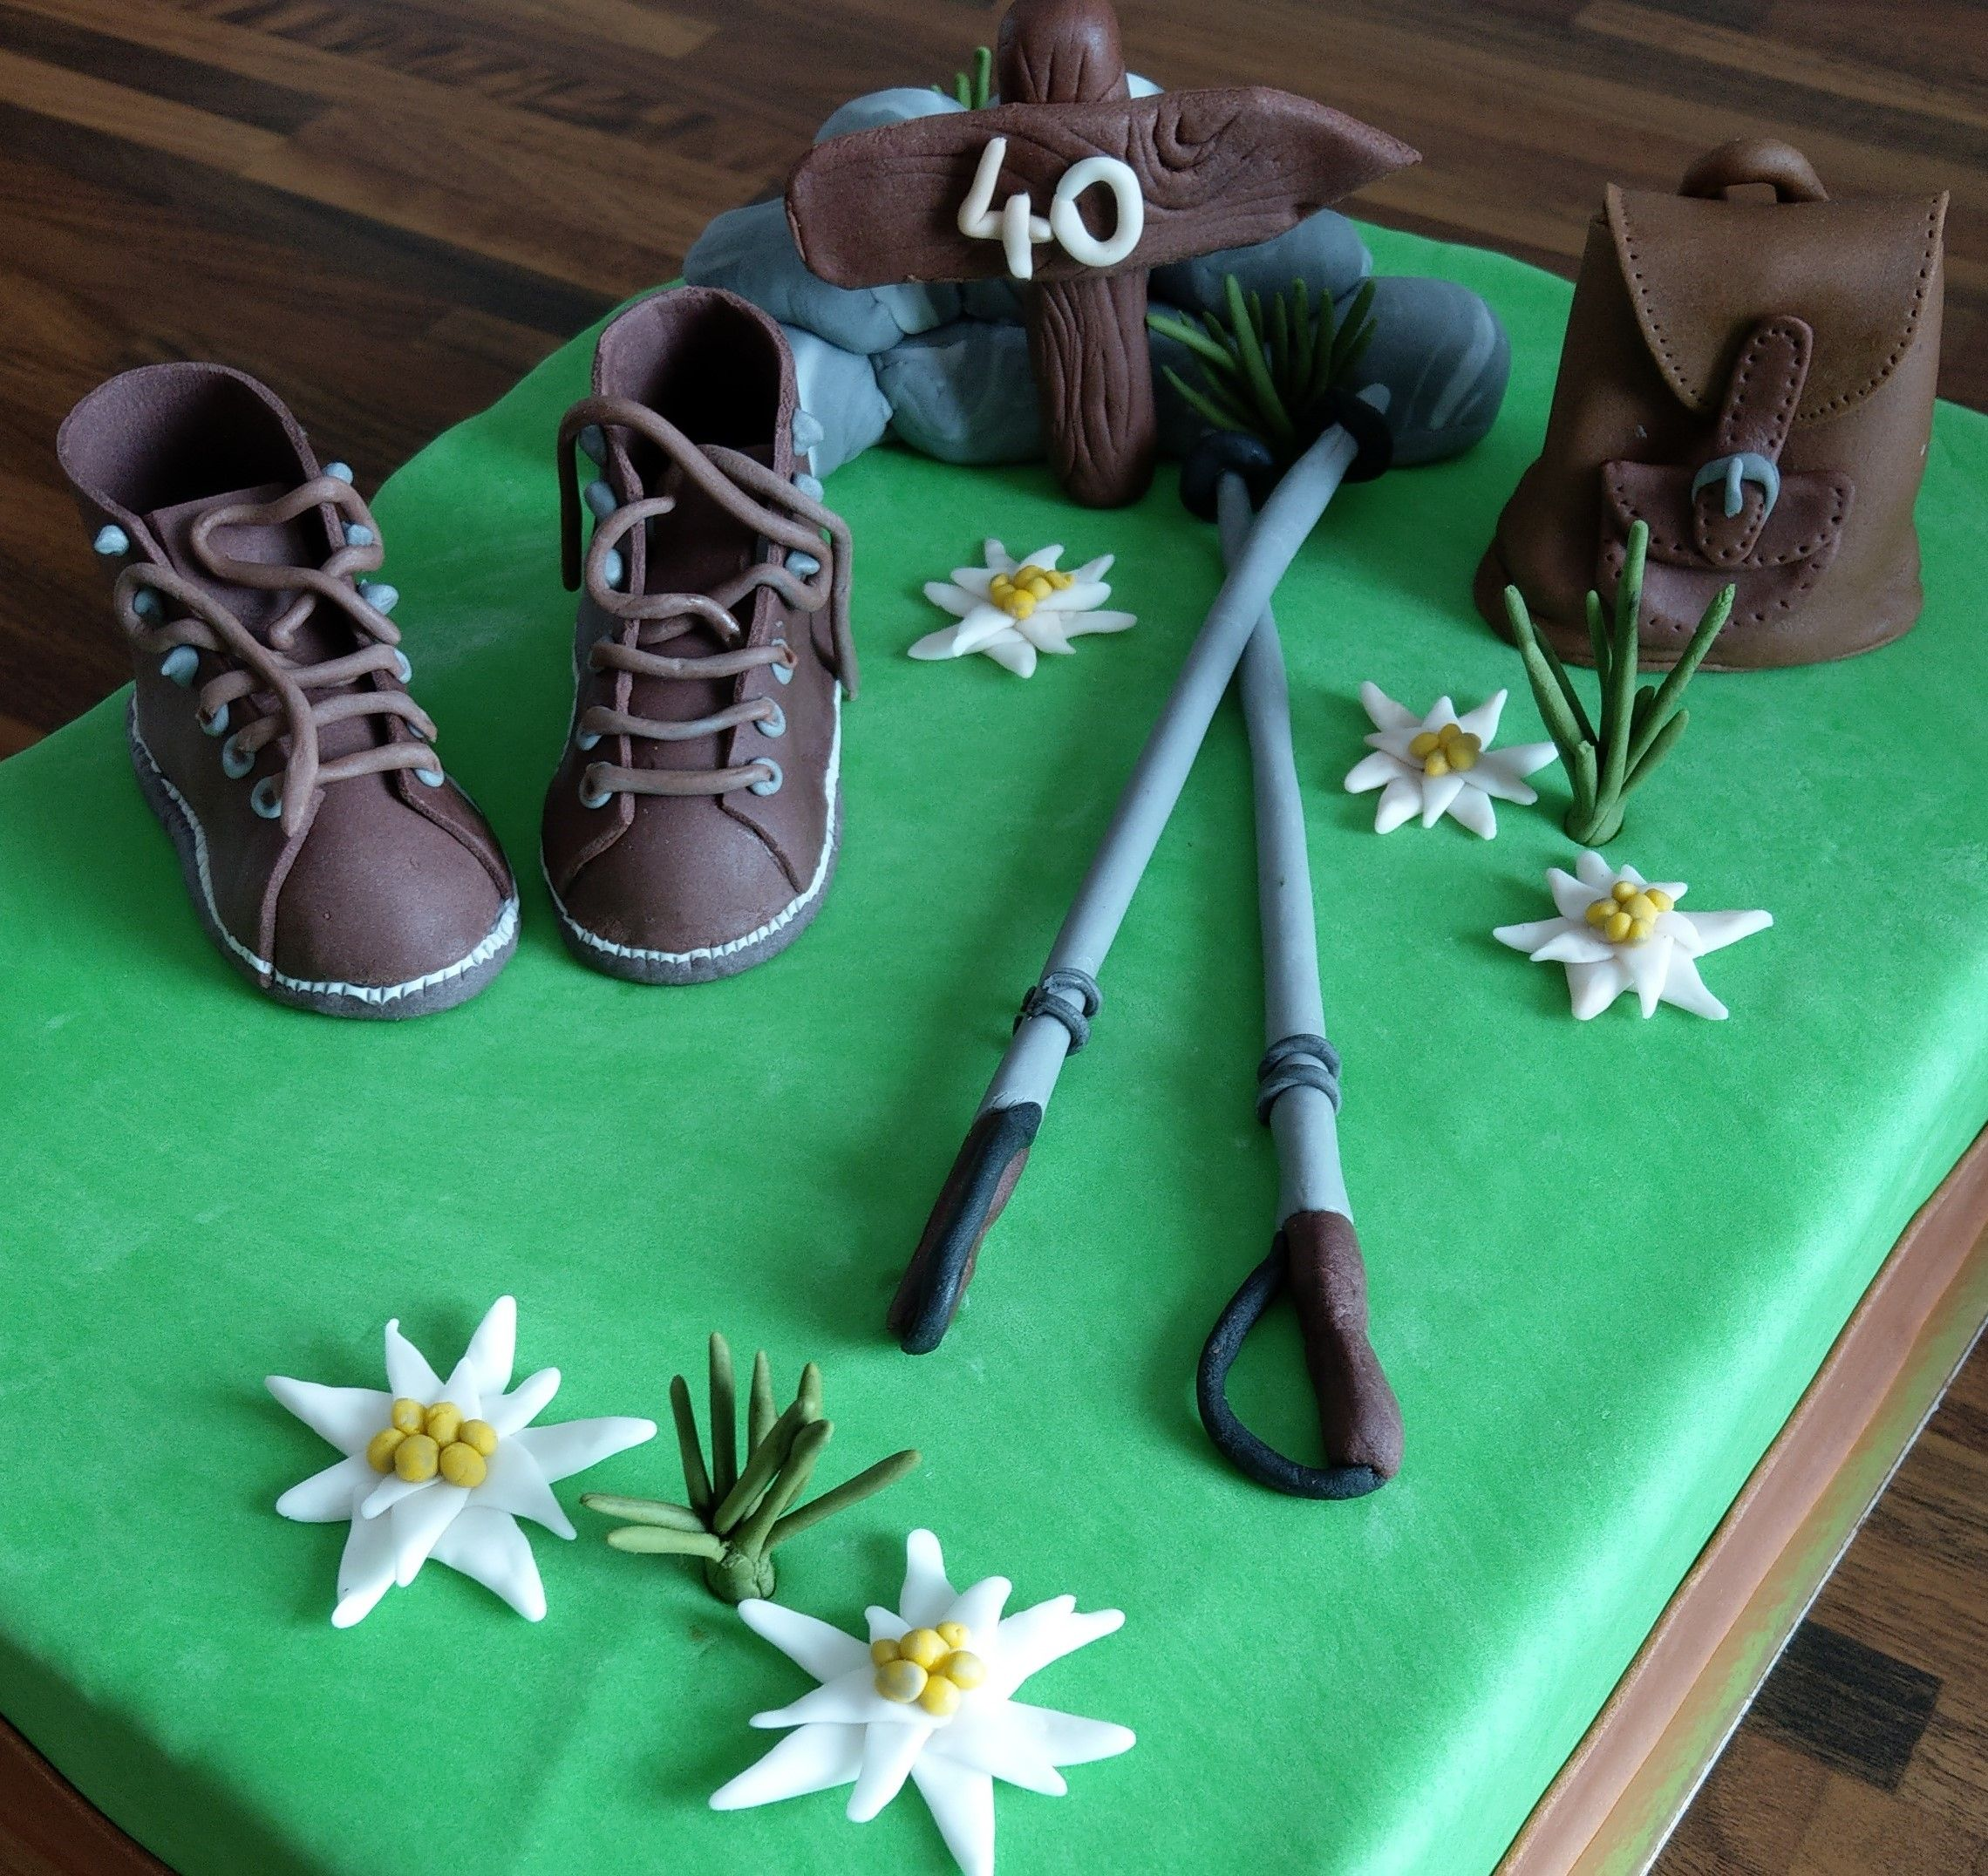 Mountaineer cake topper | Sugar flowers, Cake toppers, Cake